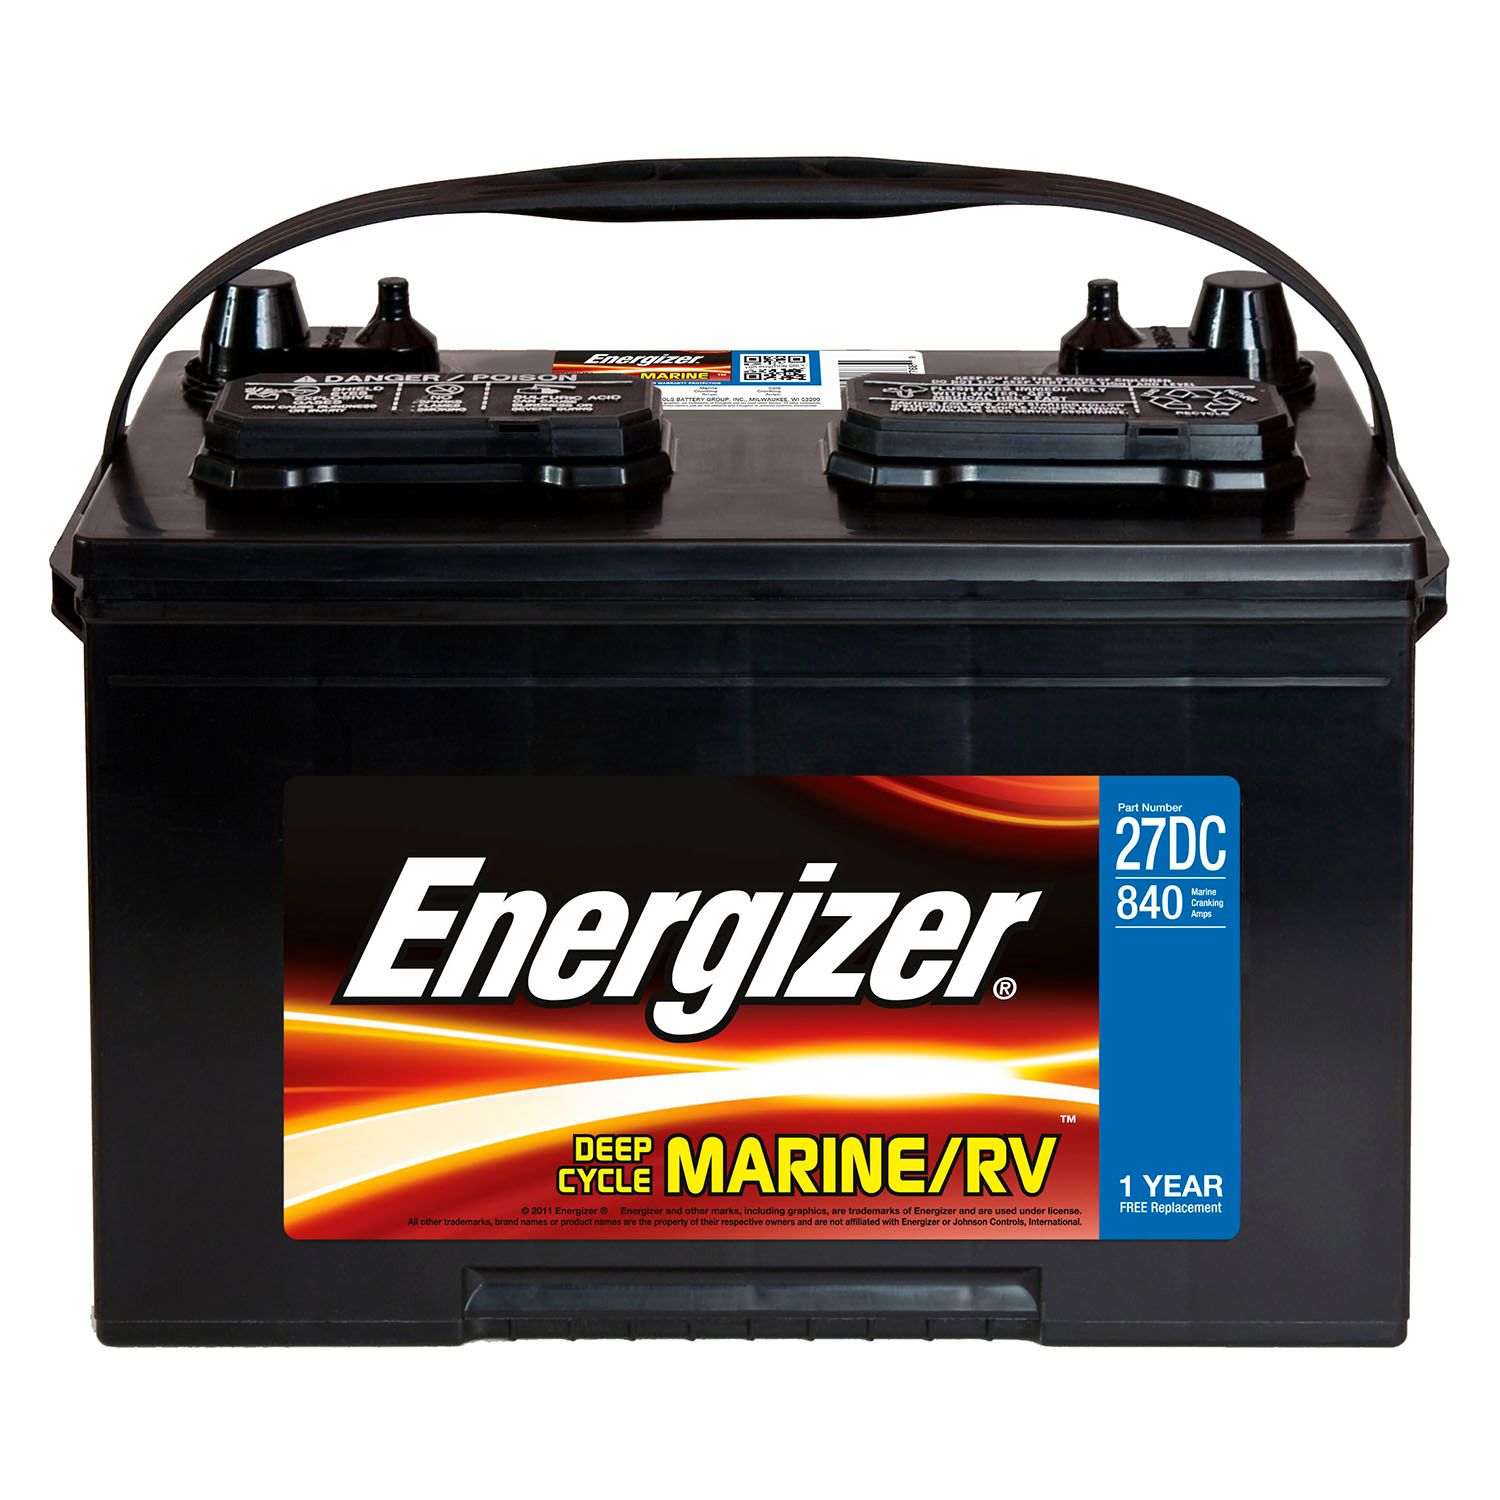 How Long Should I Charge A Car Battery